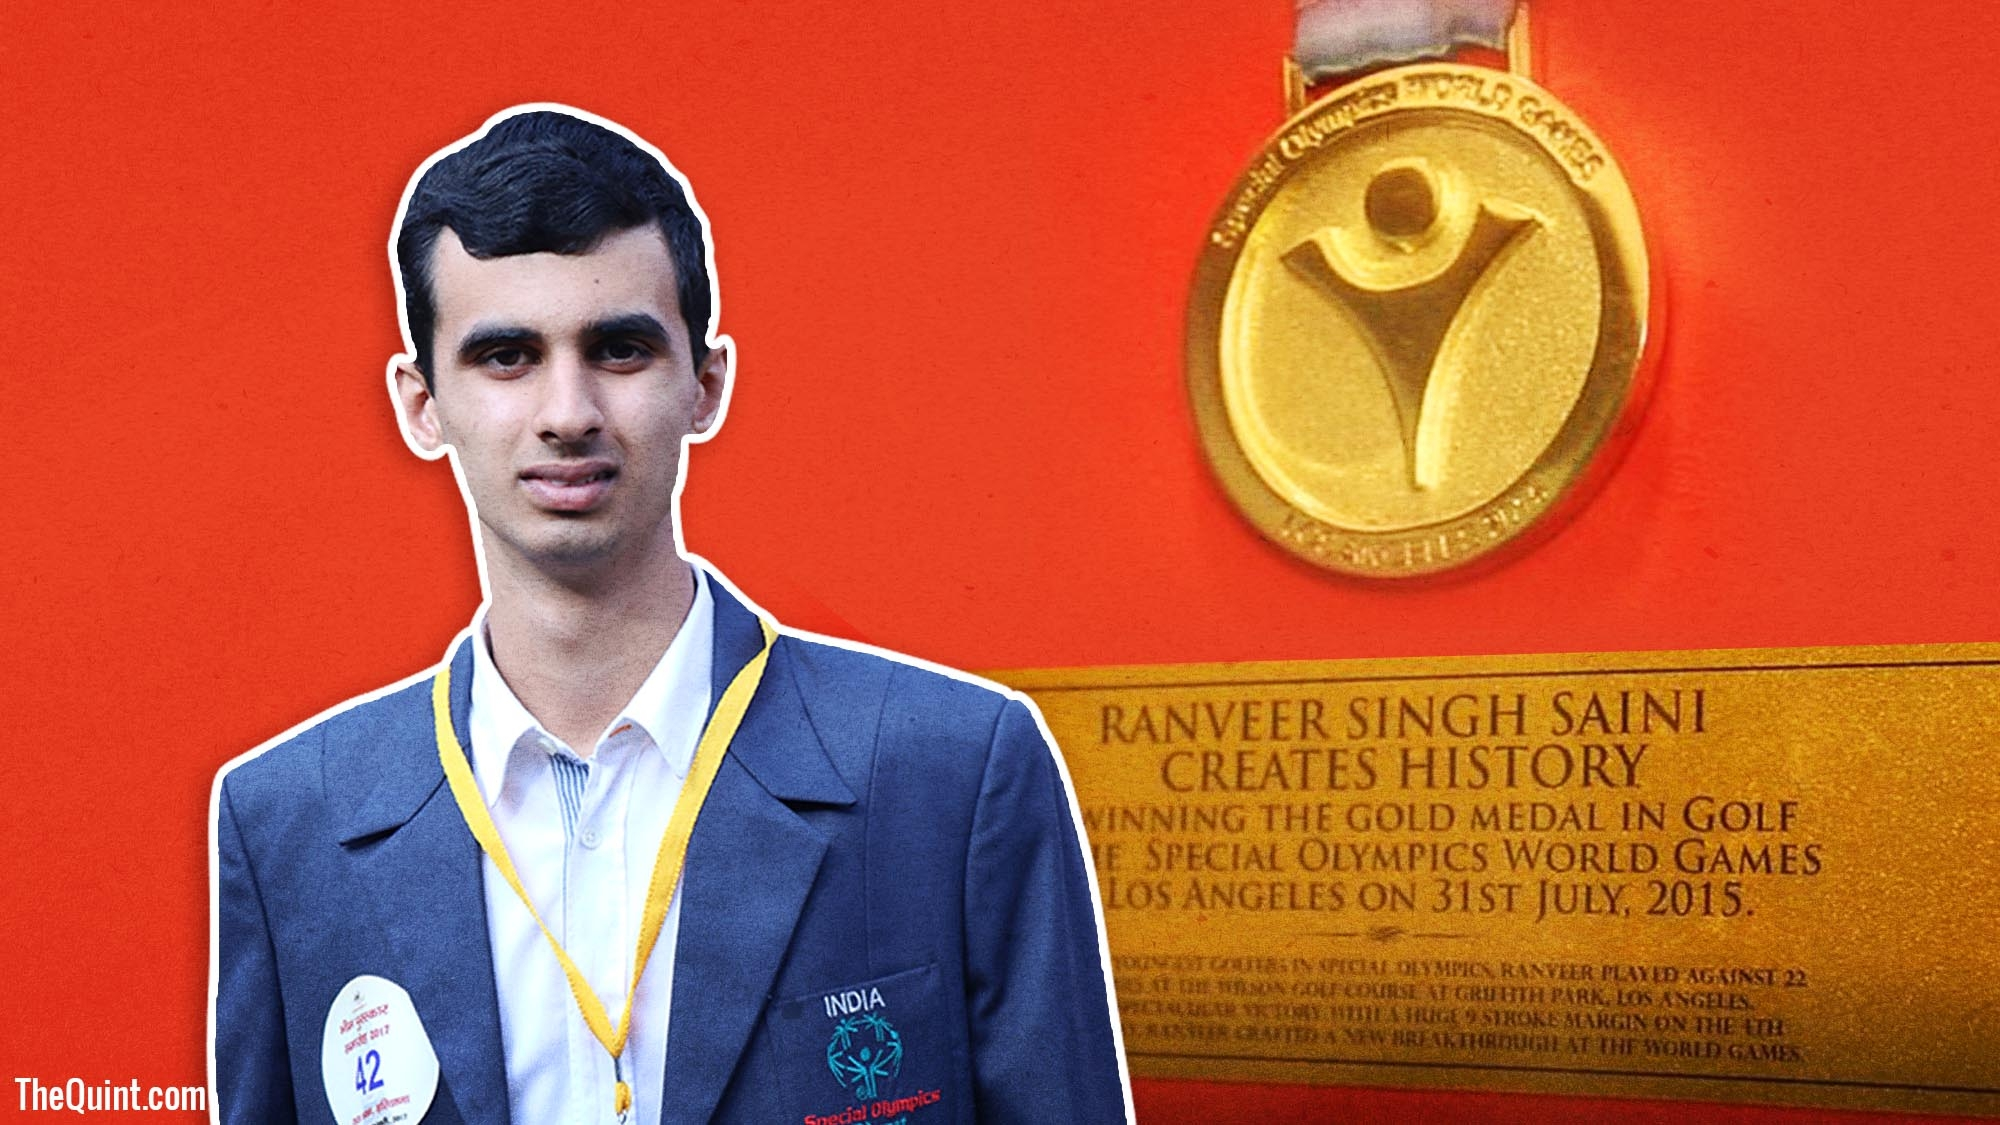 Ranveer sainis journey from autism to gold the quint altavistaventures Choice Image